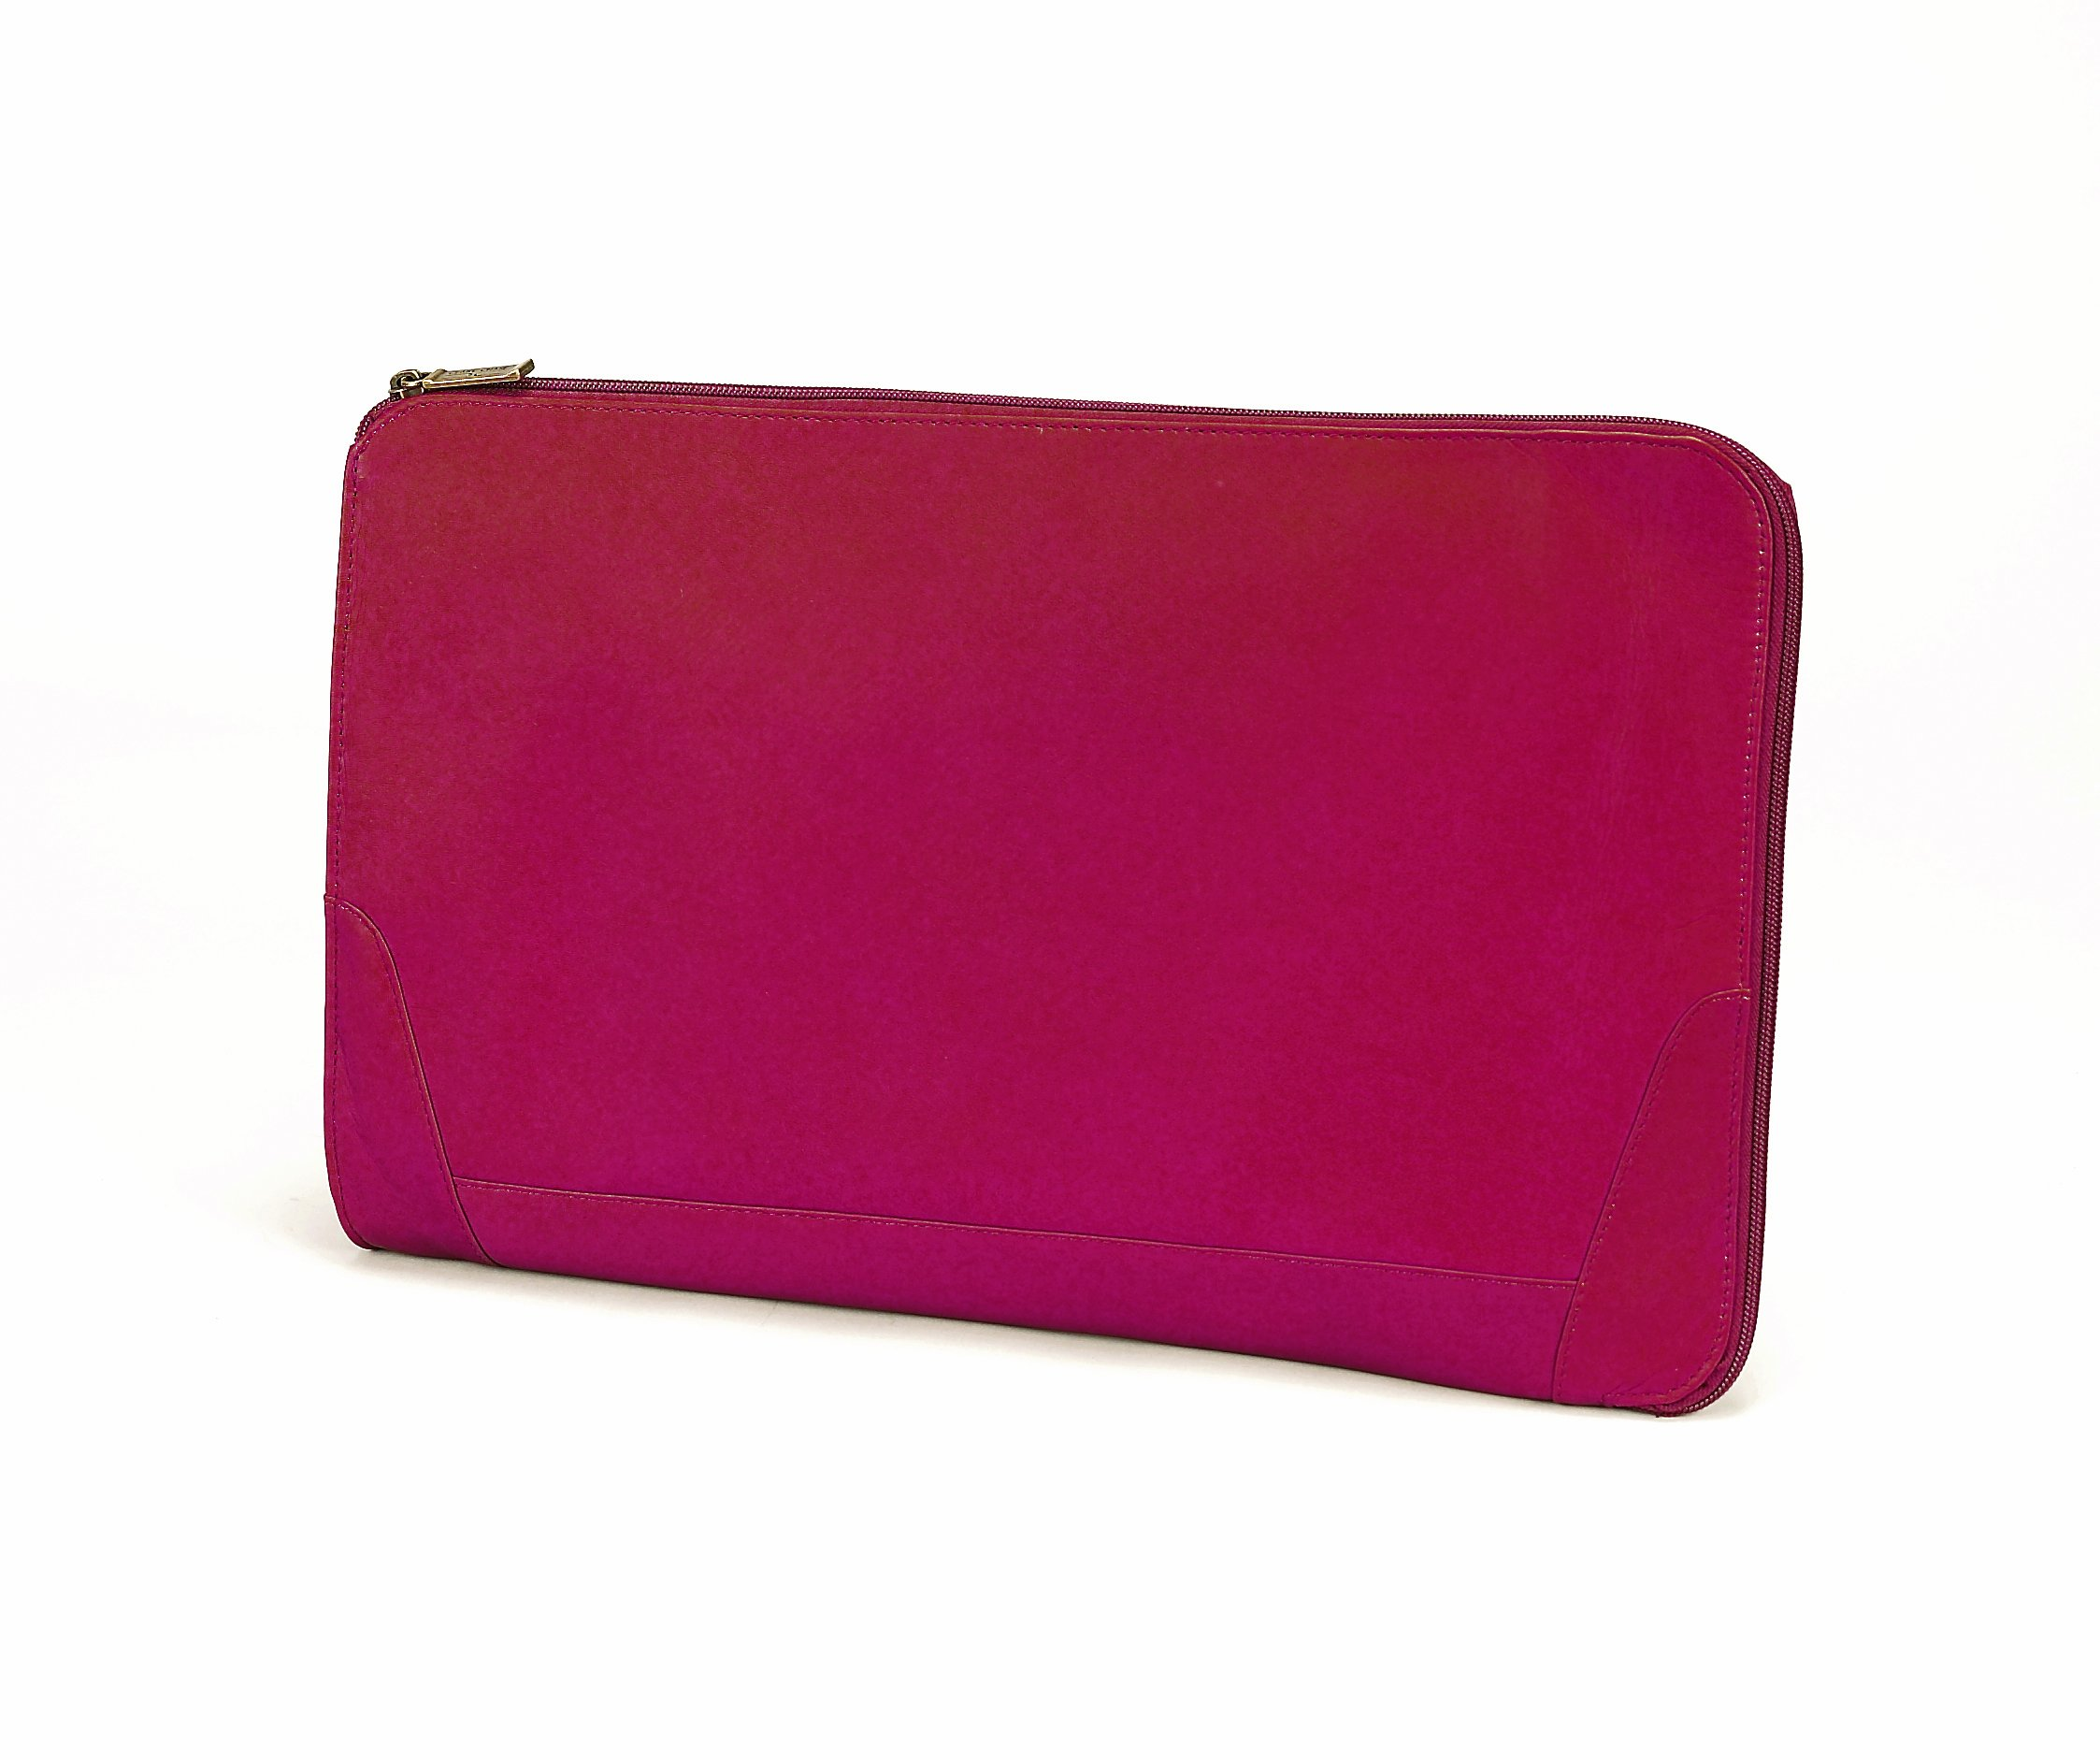 Claire Chase Legal Folio, Red, One Size